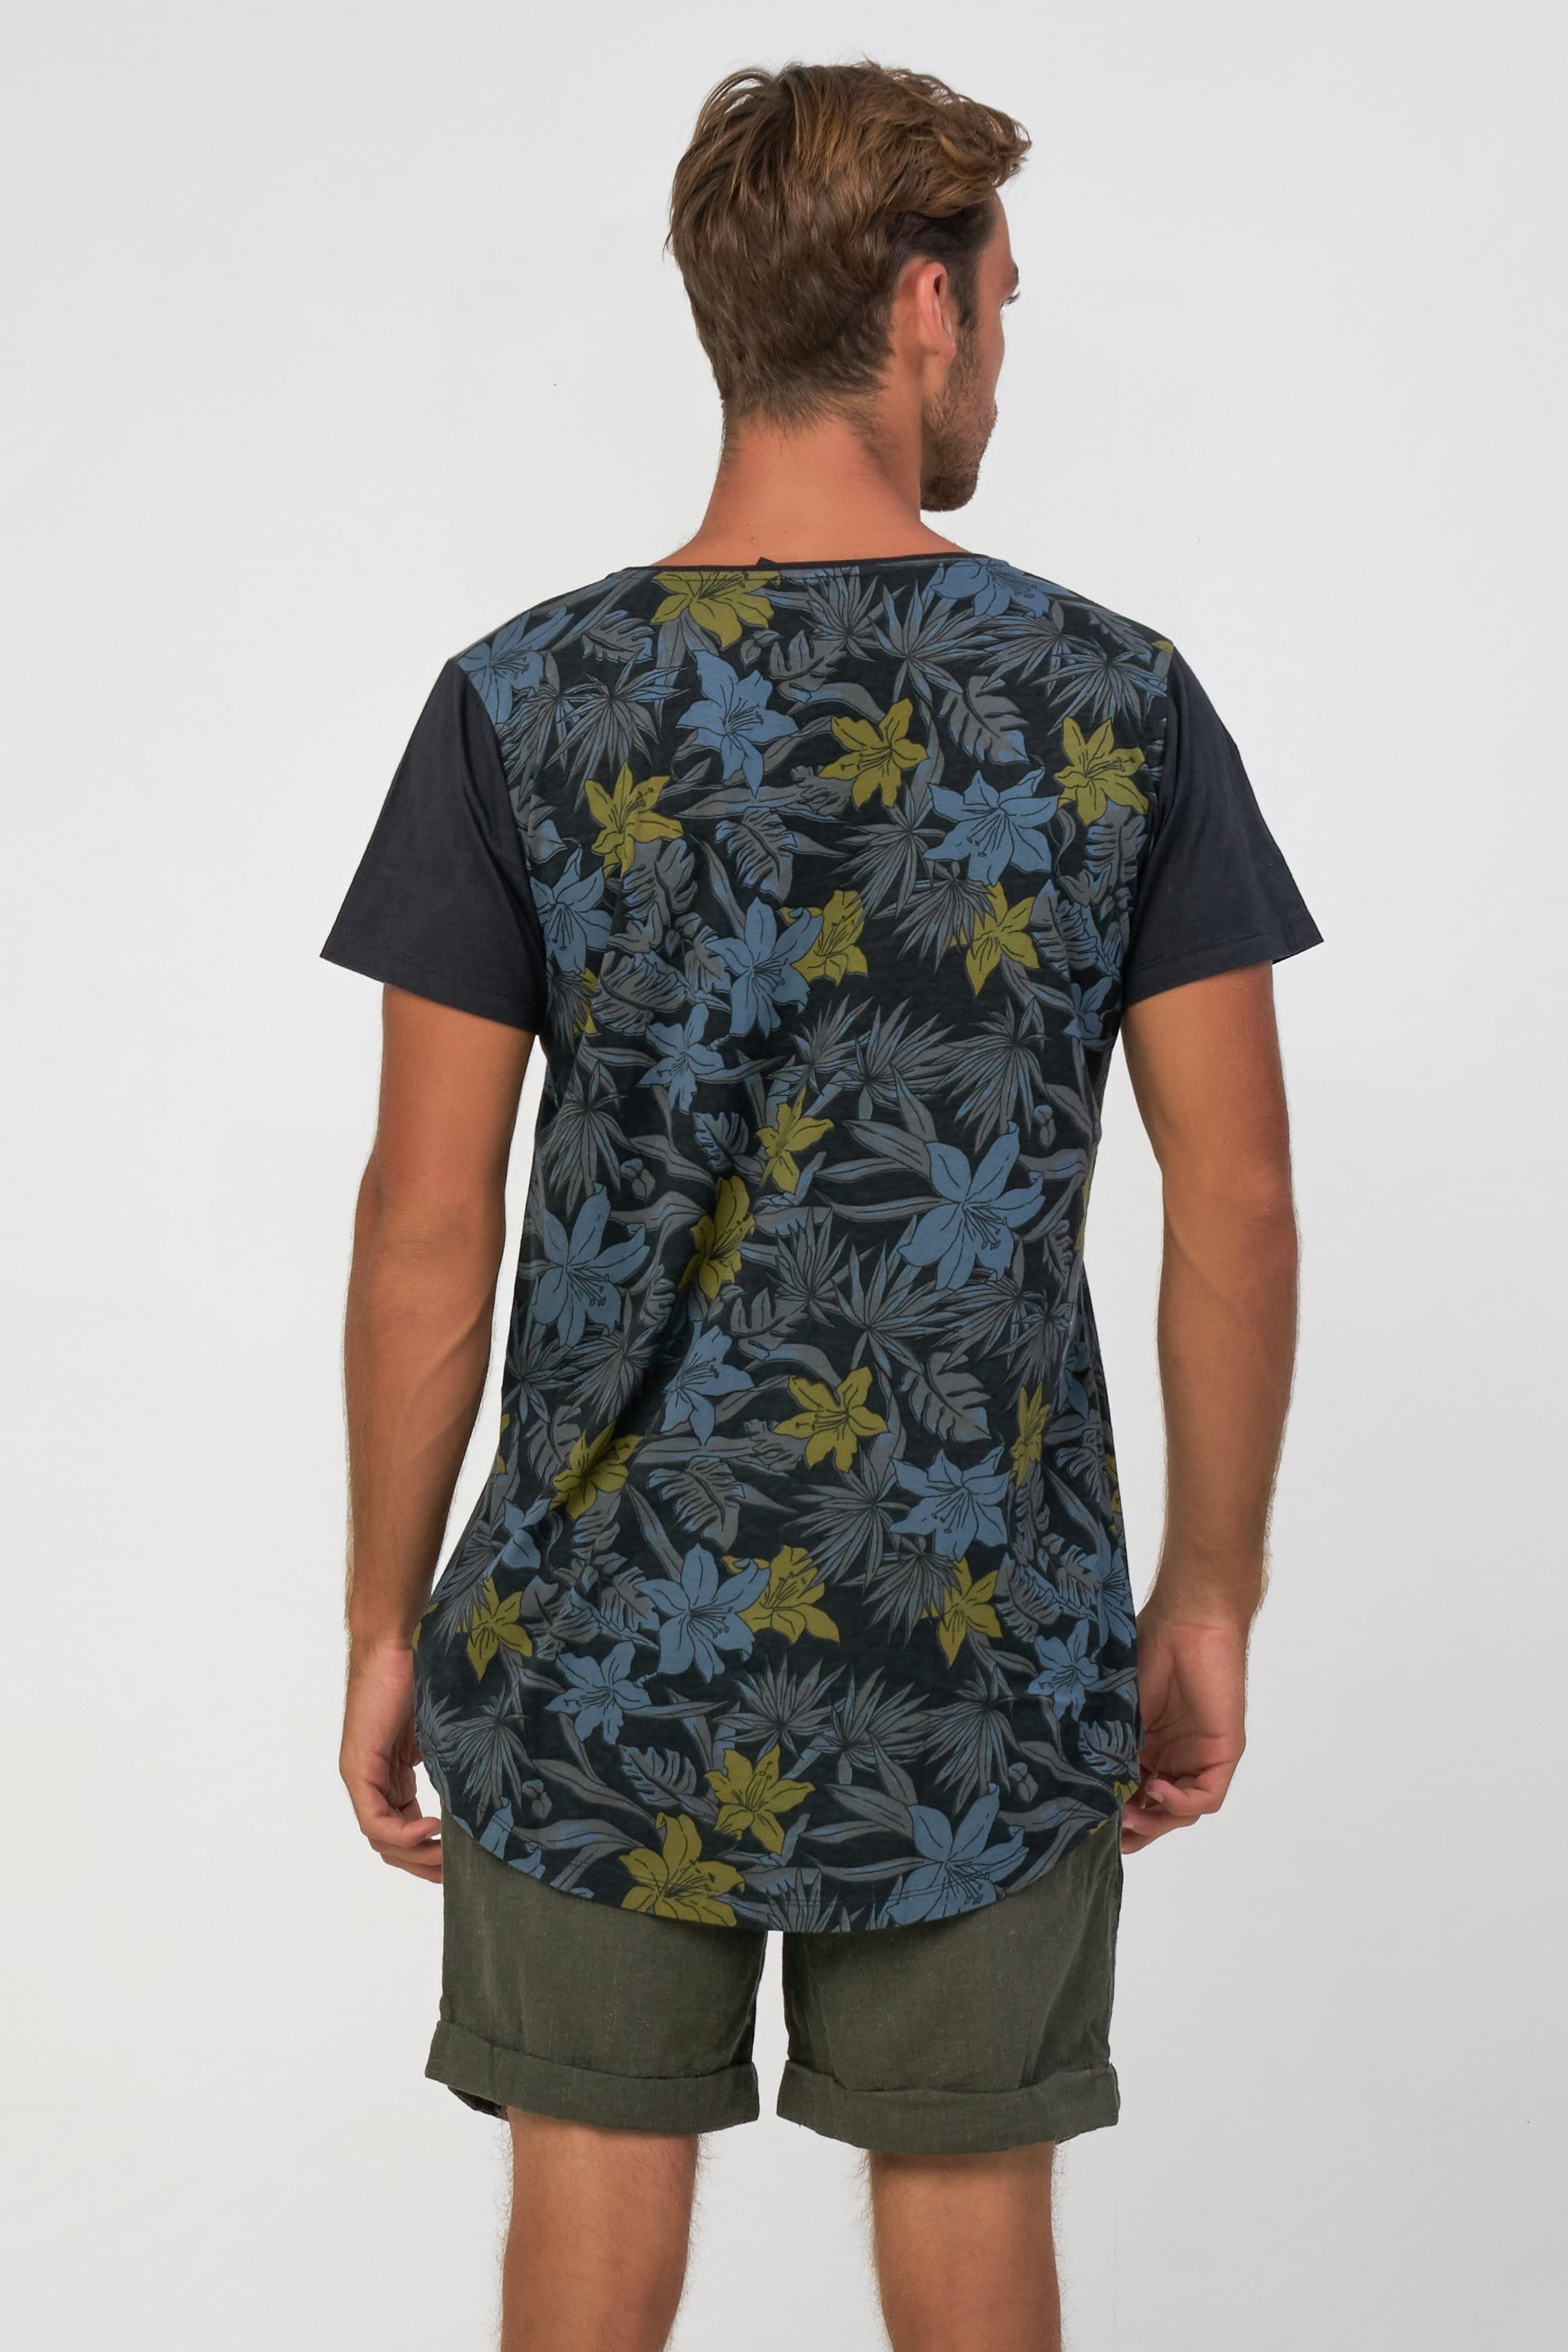 Abroha Tee - Man T-Shirt - LOST IN PARADISE